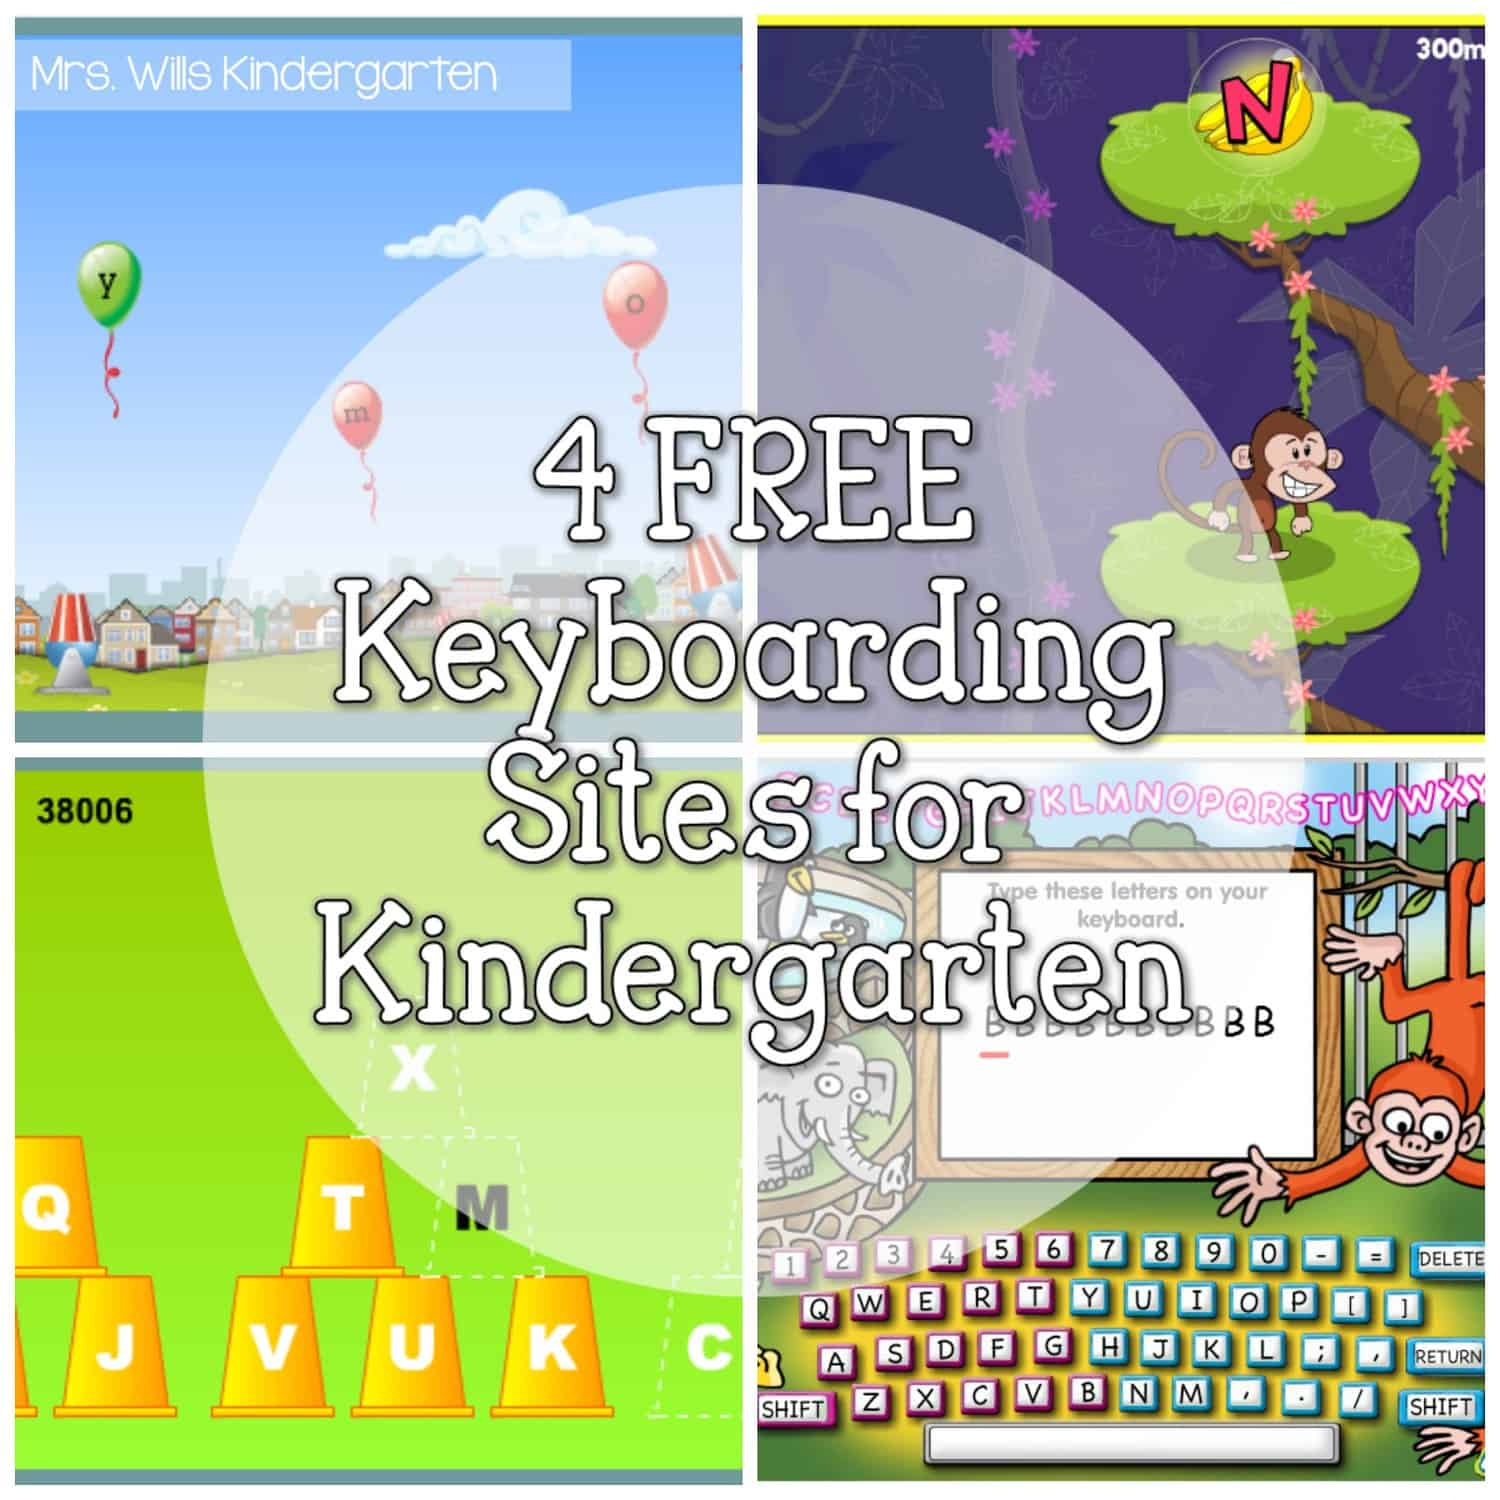 hight resolution of 4 FREE Keyboarding sites for Kindergarten - Mrs. Wills Kindergarten